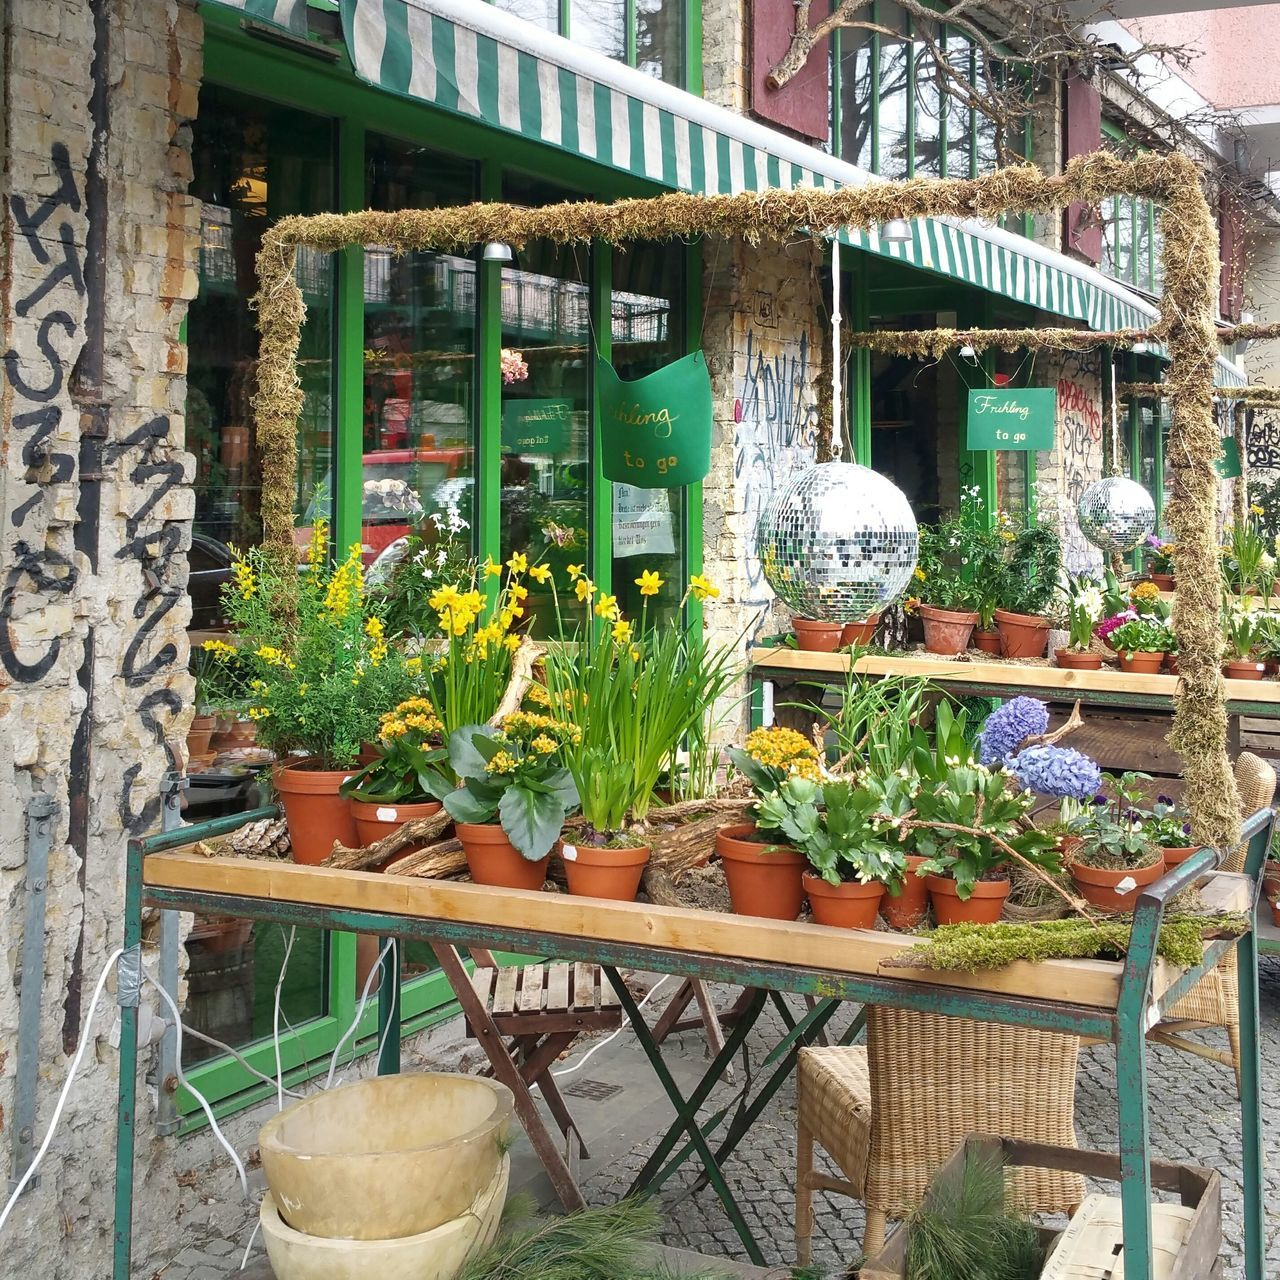 Frühling To Go Growth Window No People Green Color Freshness Close-up Street Photography Hidden Gem Urbexexplorer Fassadengestaltung Spring Flower Collection Urban Photography Berliner Ansichten Urban Romantic Hiddengems Outdoors Beauty In Nature City Life Urban Scene Façade Architecturale Flower Shopping Discover Your City Disco Downtown District